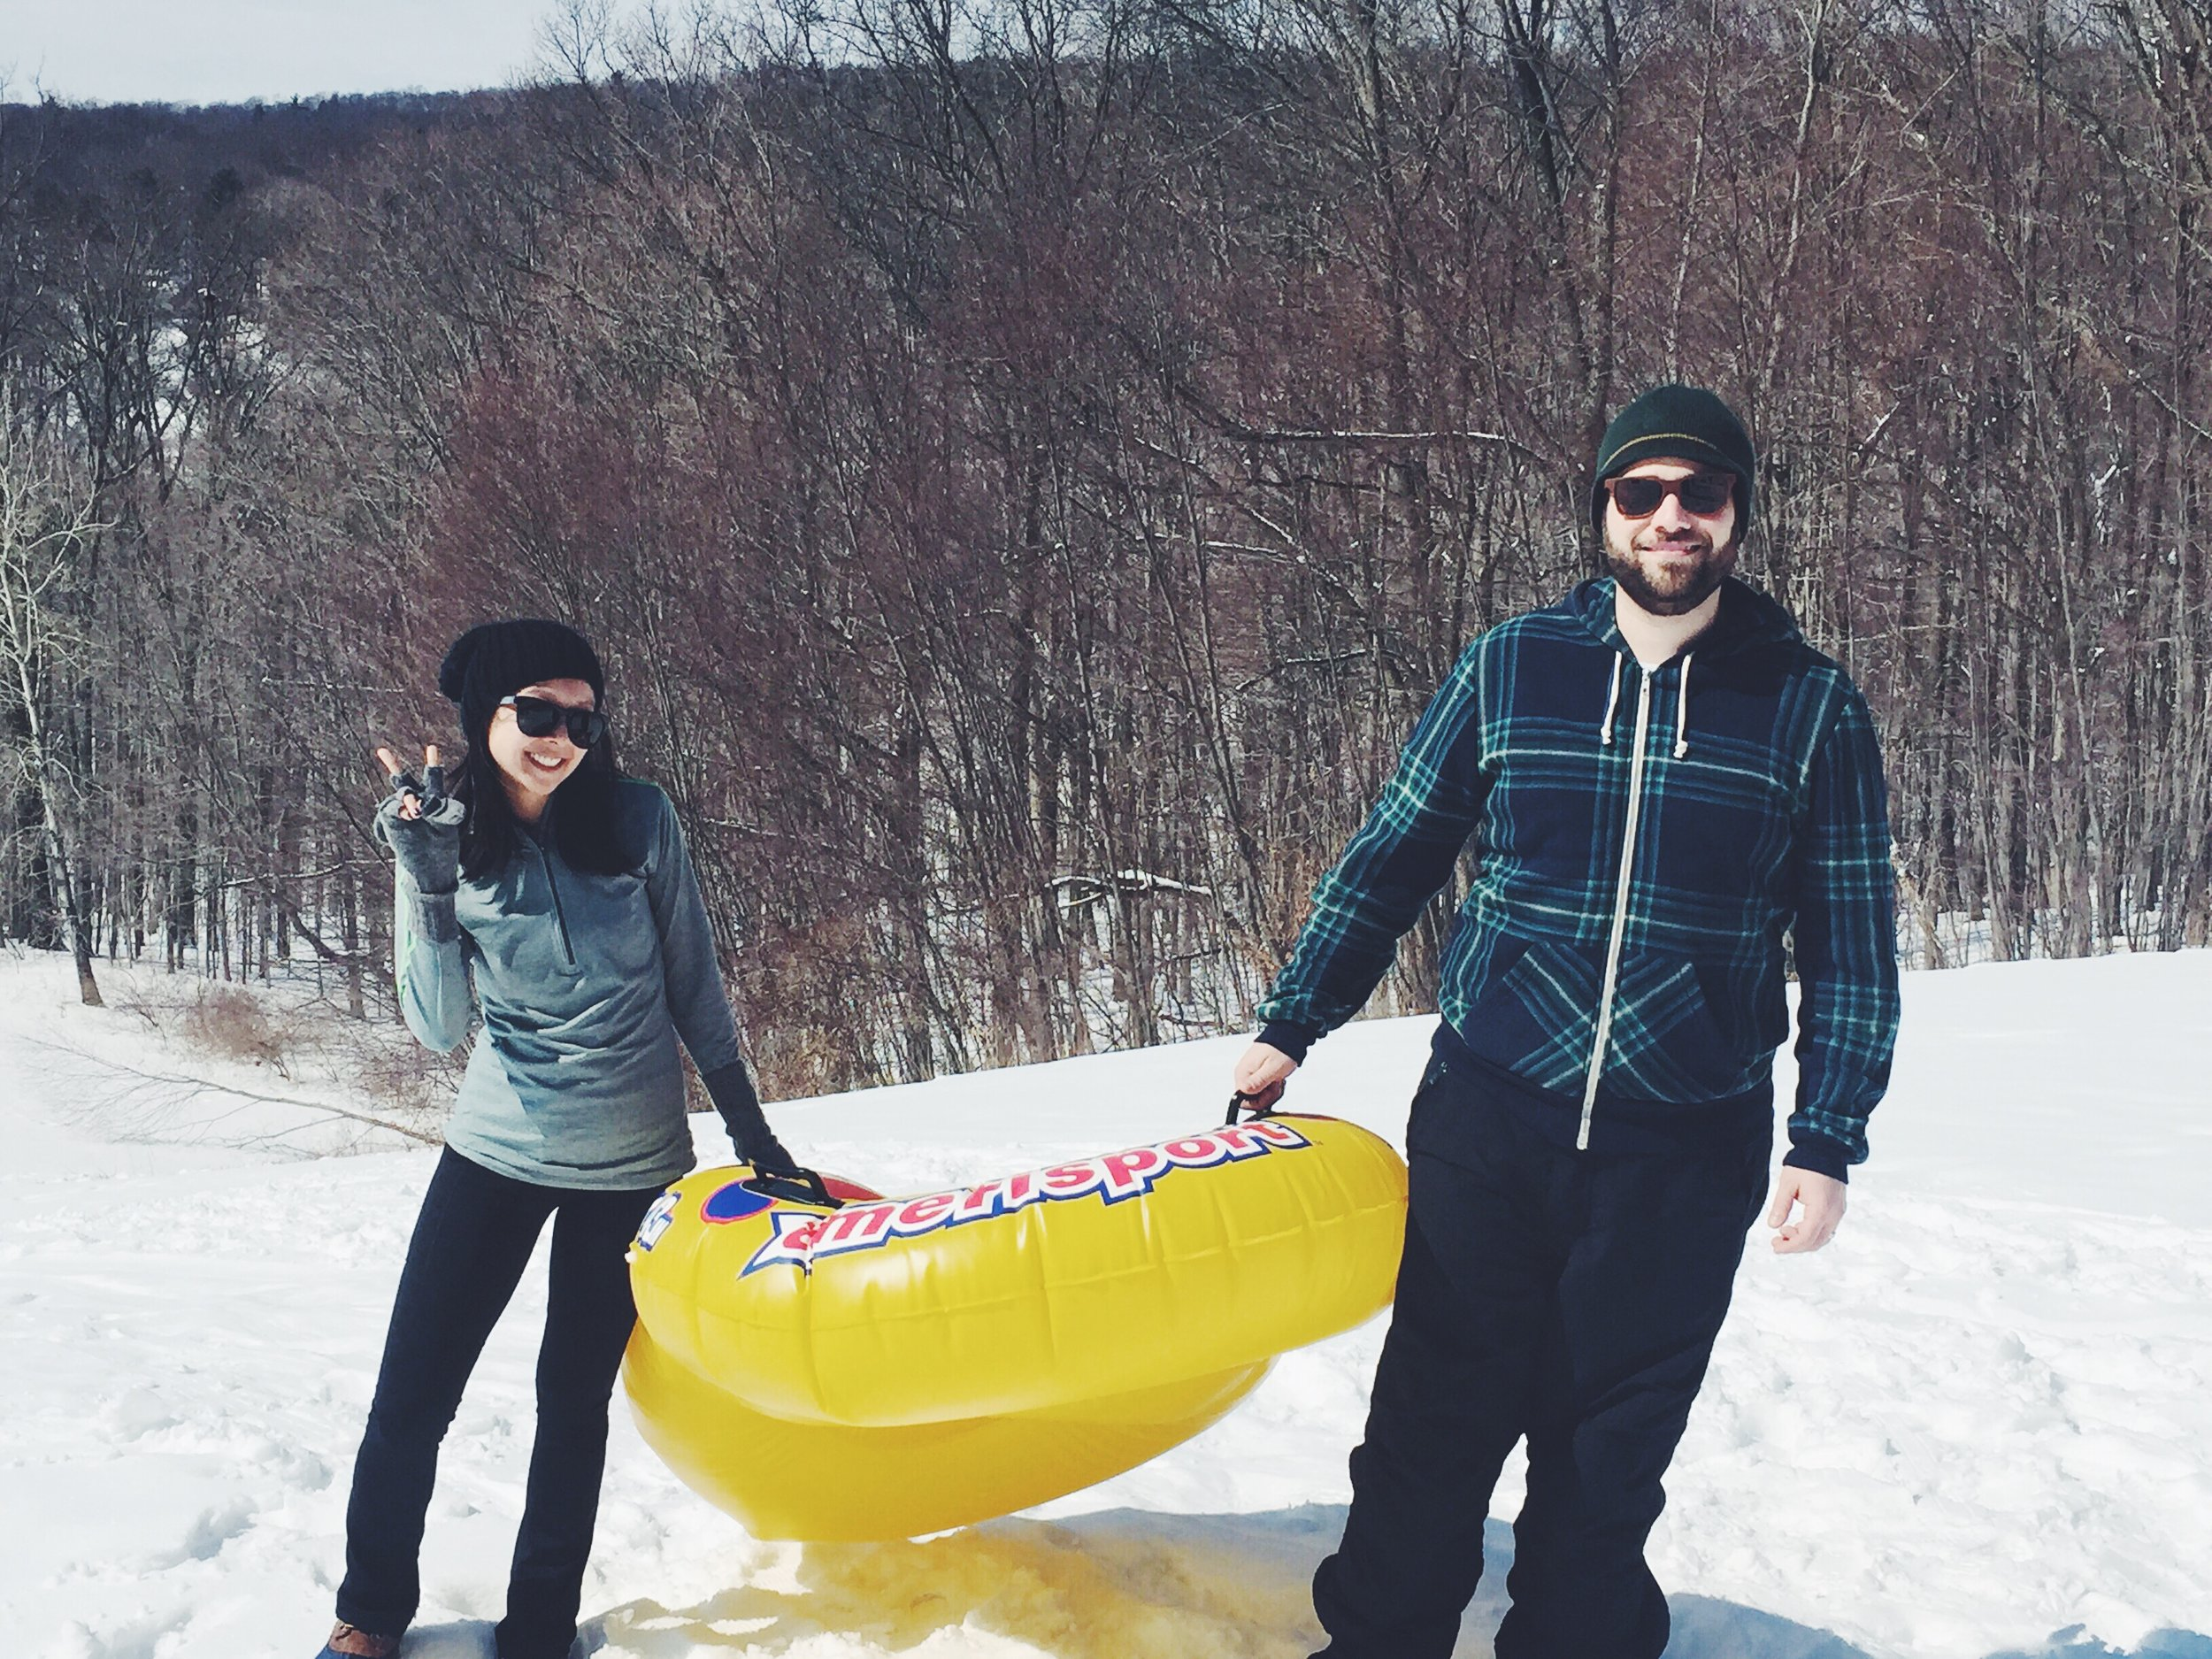 We went sledding! I forgot how much fun it is and don't recall the last time I went.